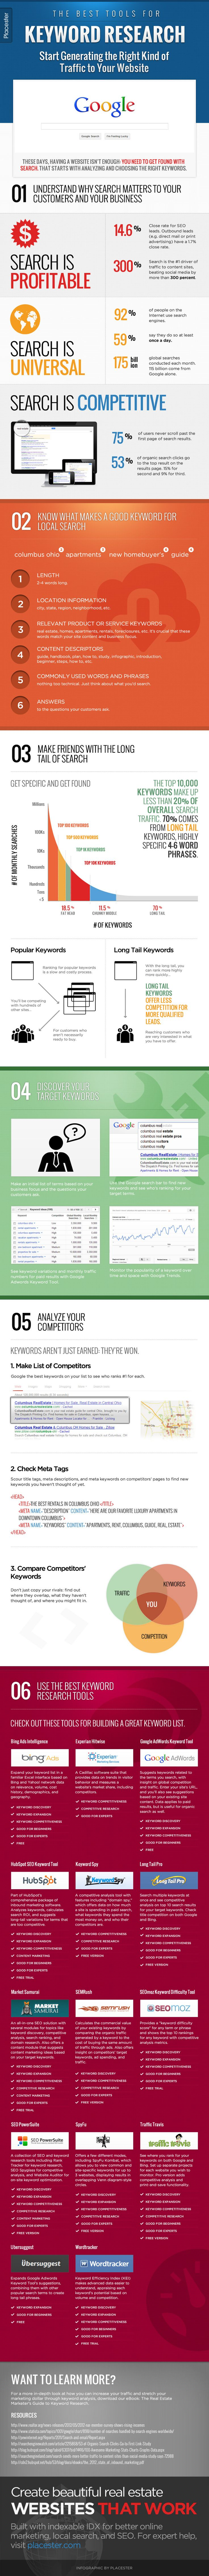 5 Incredible Keyword Research Analysis Tips  22d8863f9b6d8dd208ef046ab05b396d